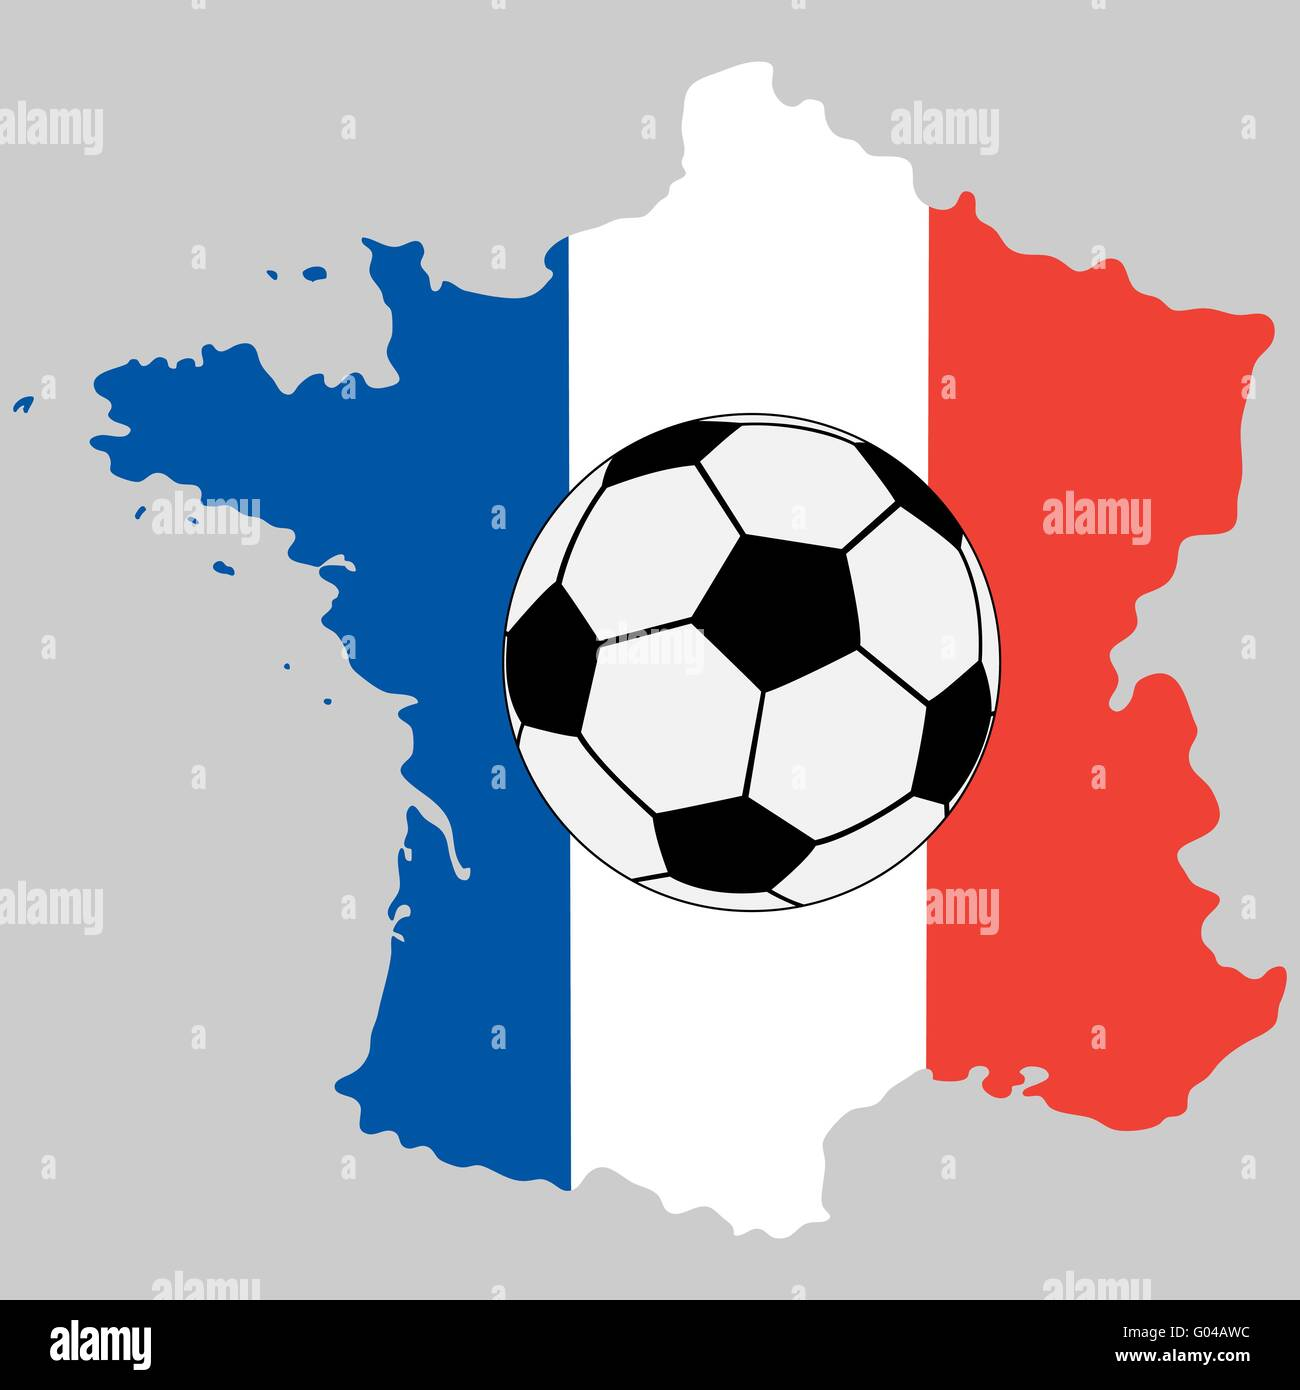 France map with flag and soccer ball - Stock Image